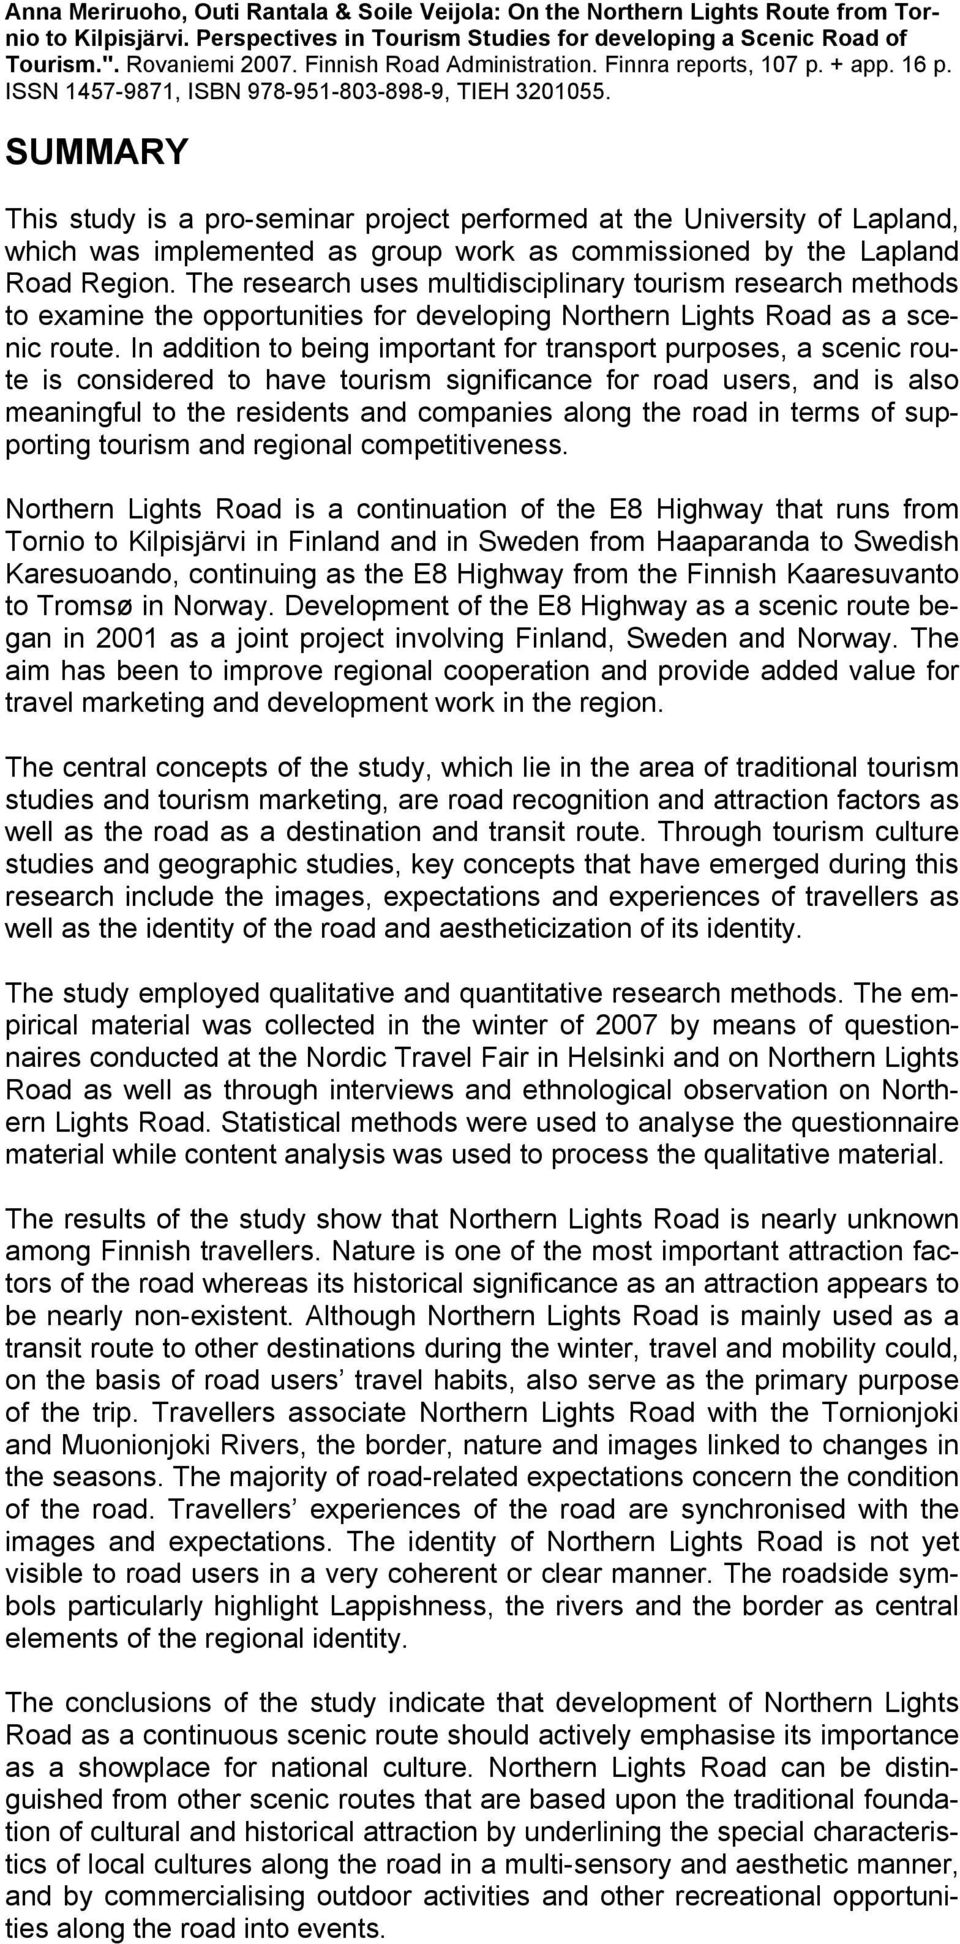 SUMMARY This study is a pro-seminar project performed at the University of Lapland, which was implemented as group work as commissioned by the Lapland Road Region.